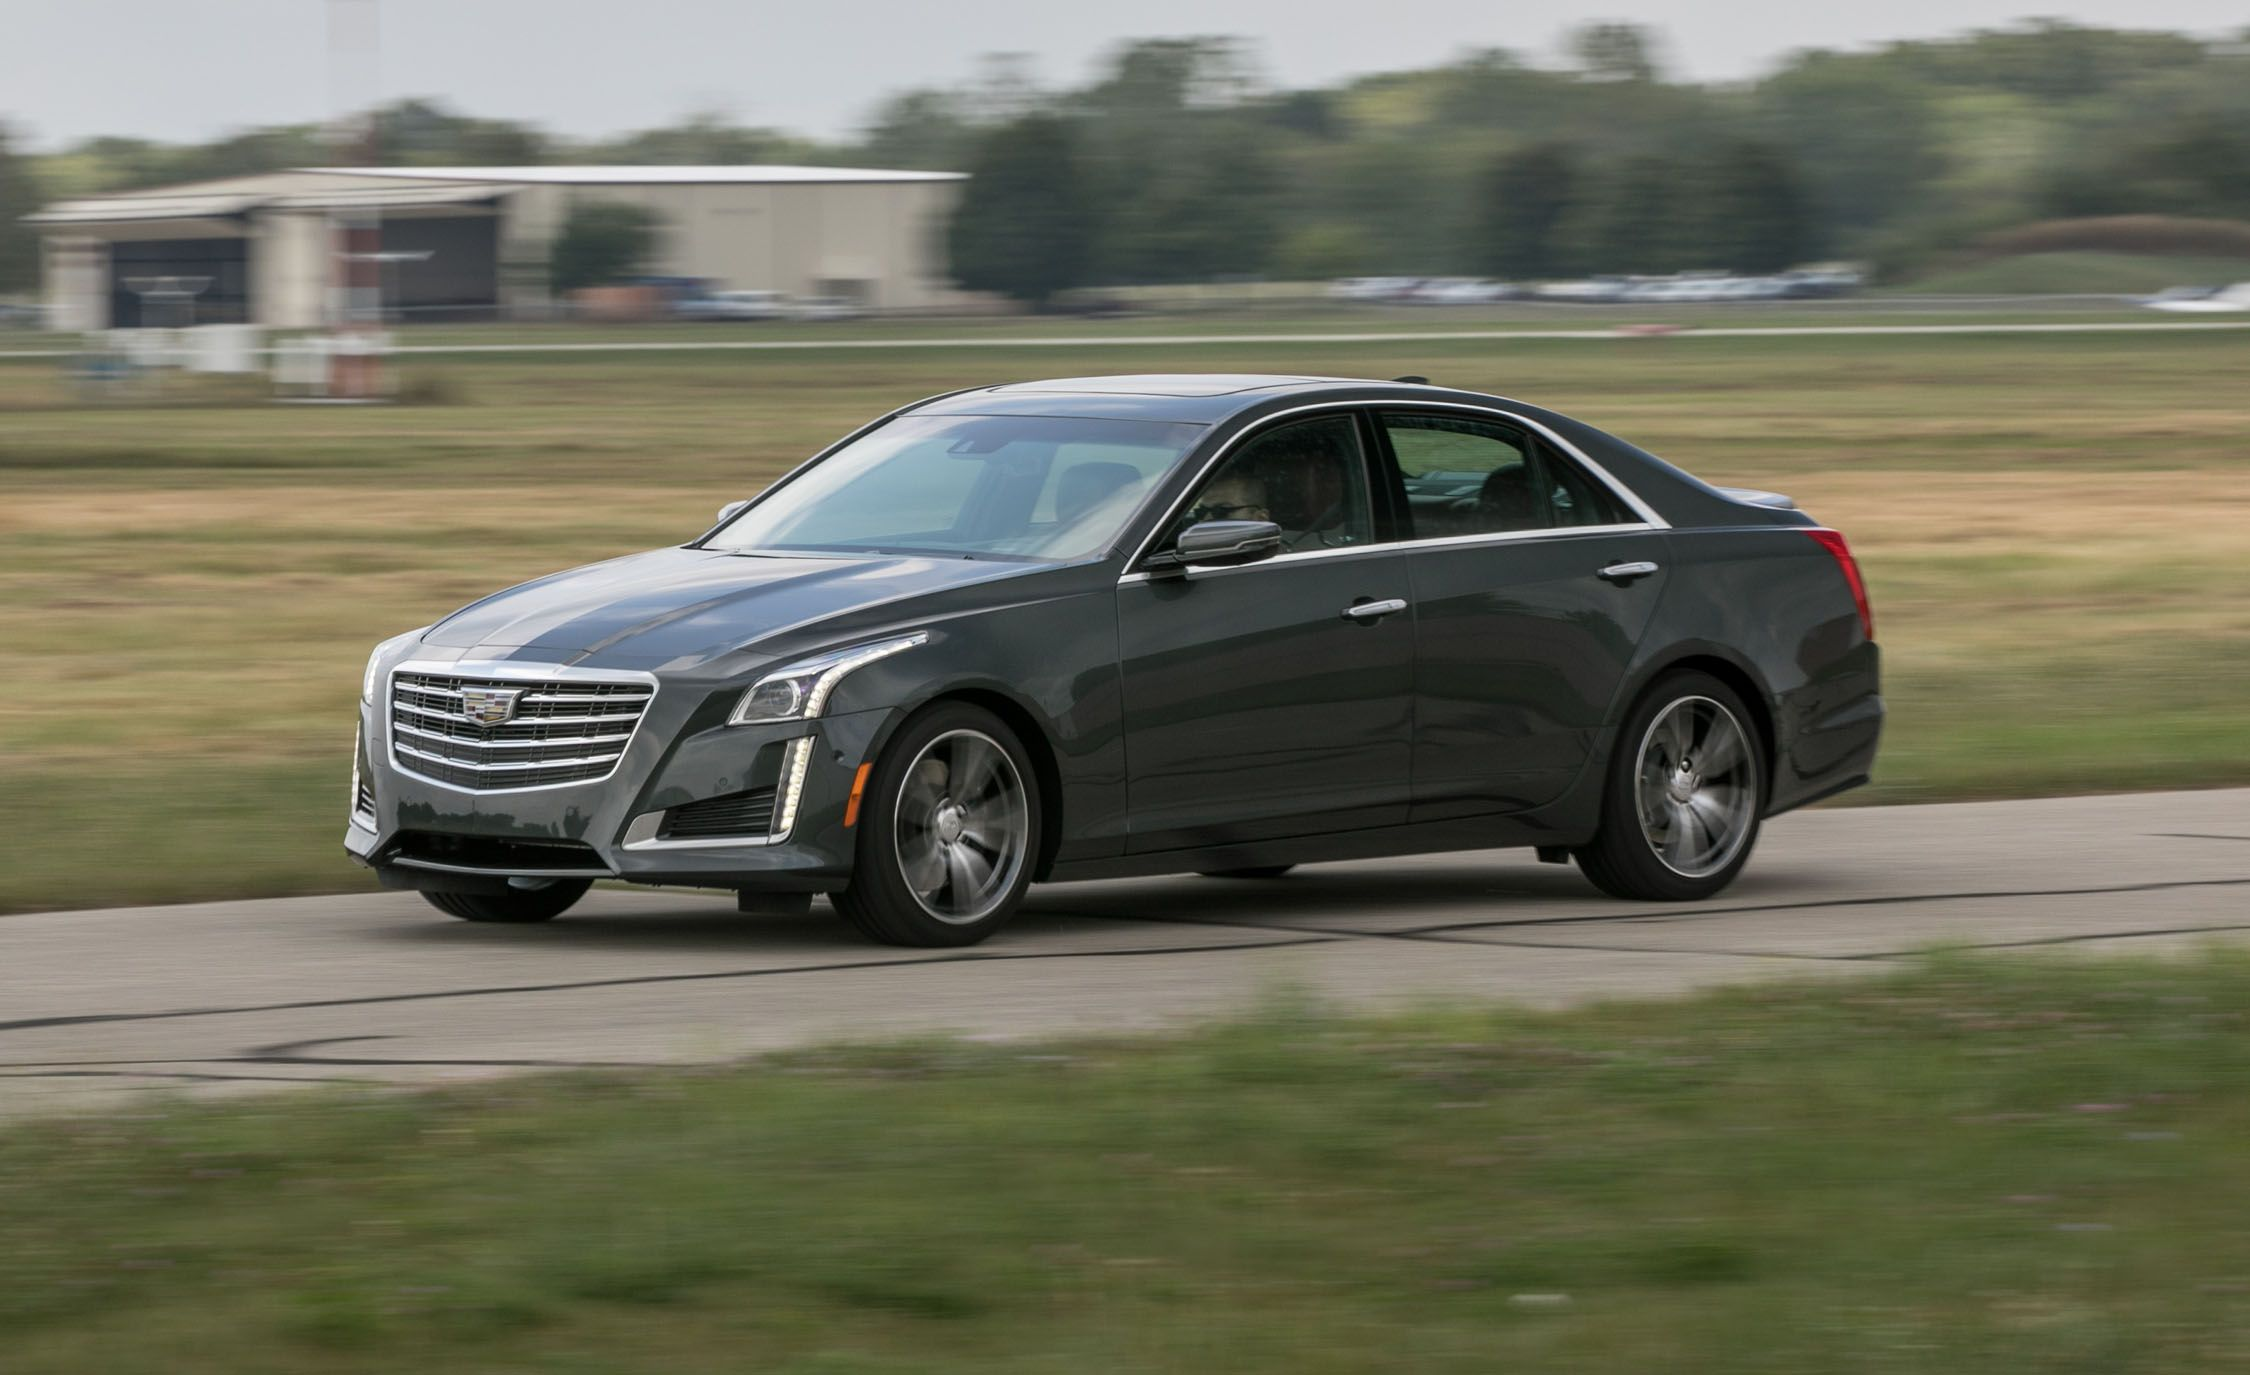 2017 Cadillac CTS 3.6L RWD Test | Review | Car and Driver